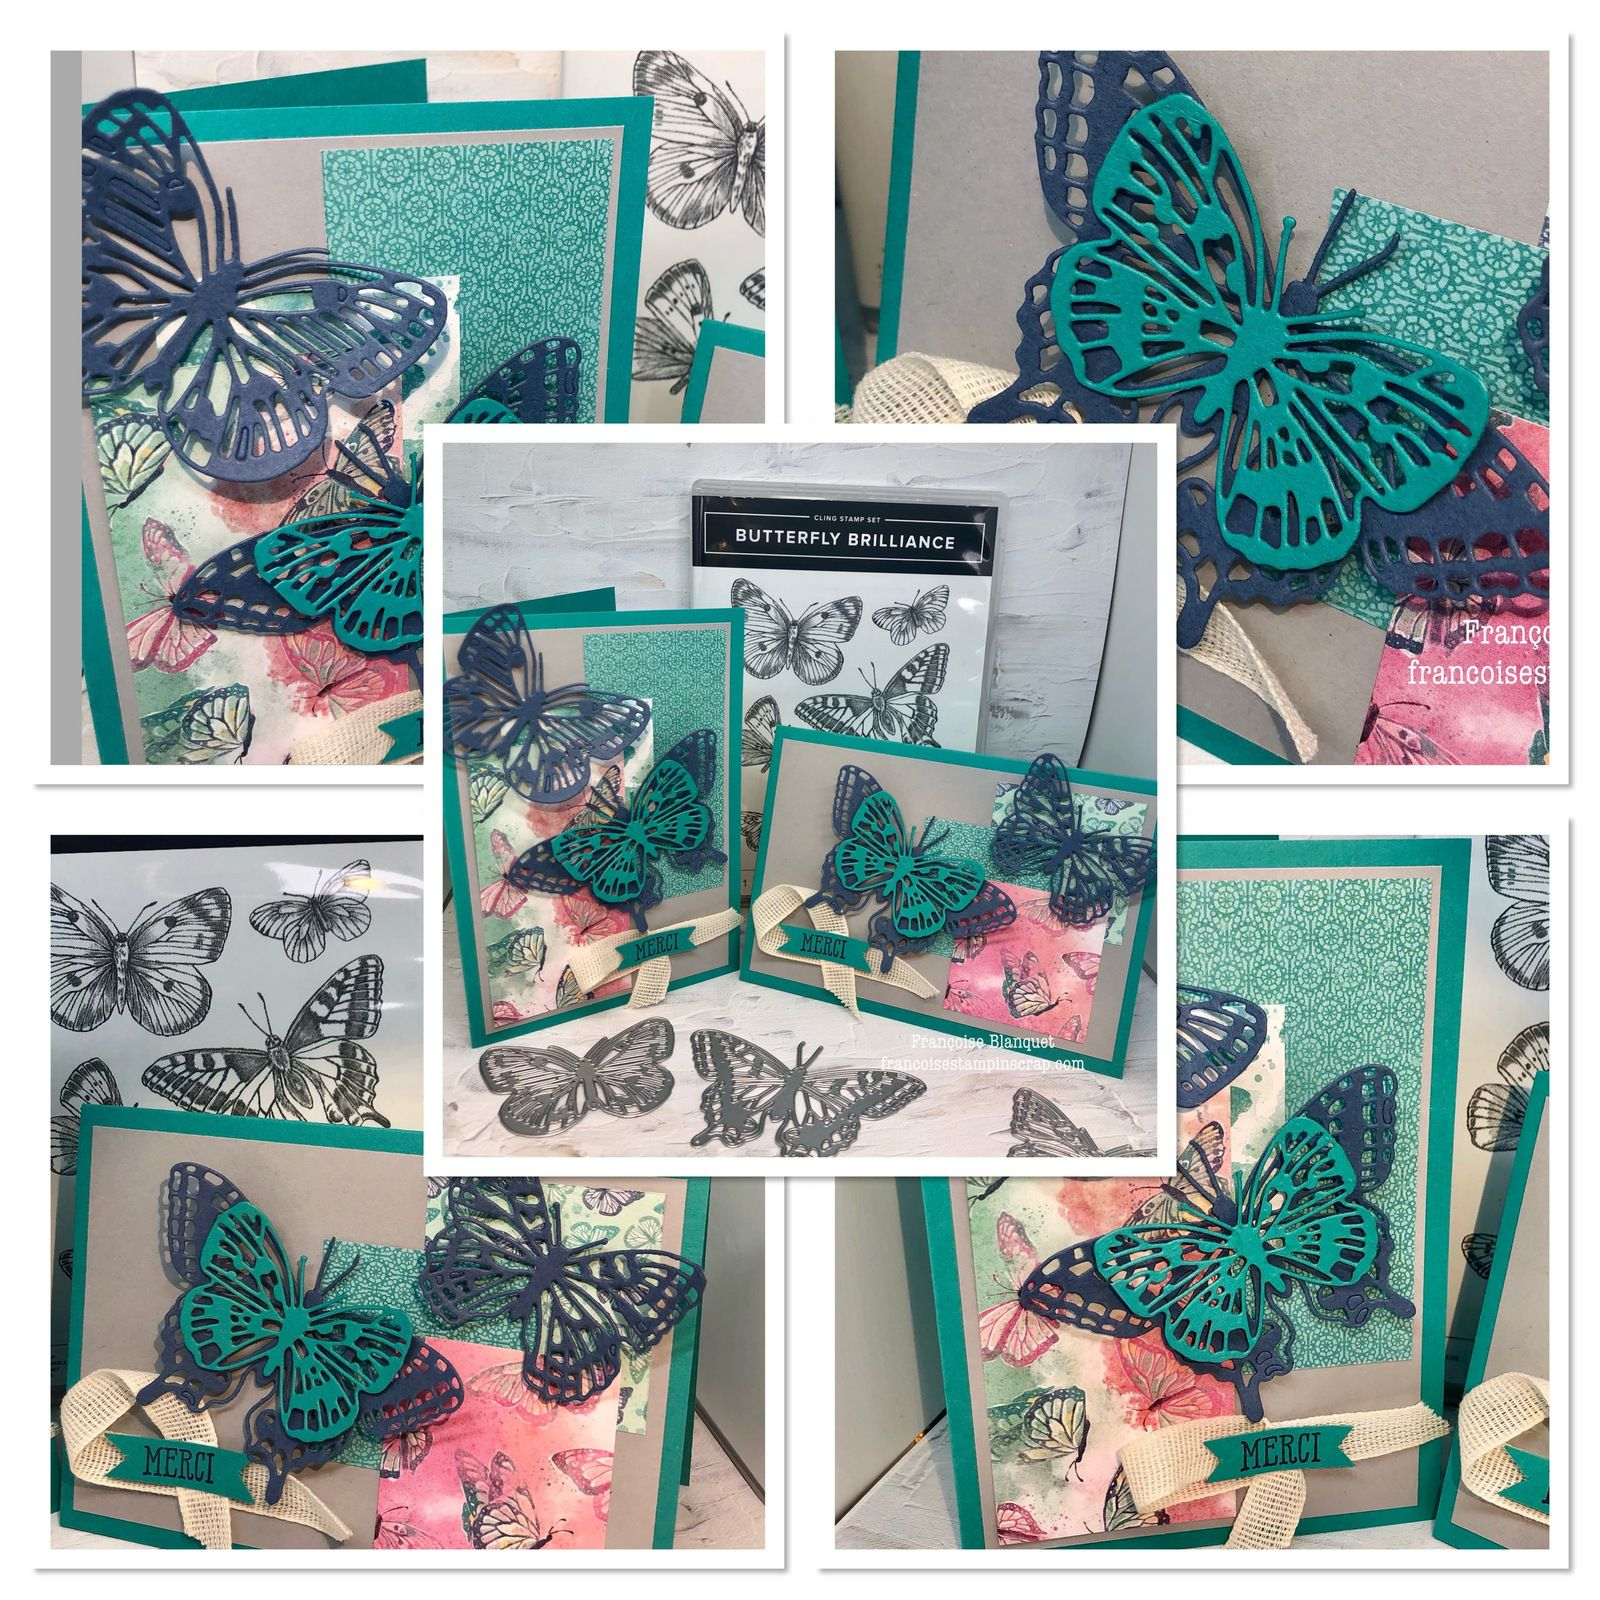 Bouquet de papillons pour dire Merci   / Butterfly brilliance Stampin'Up!